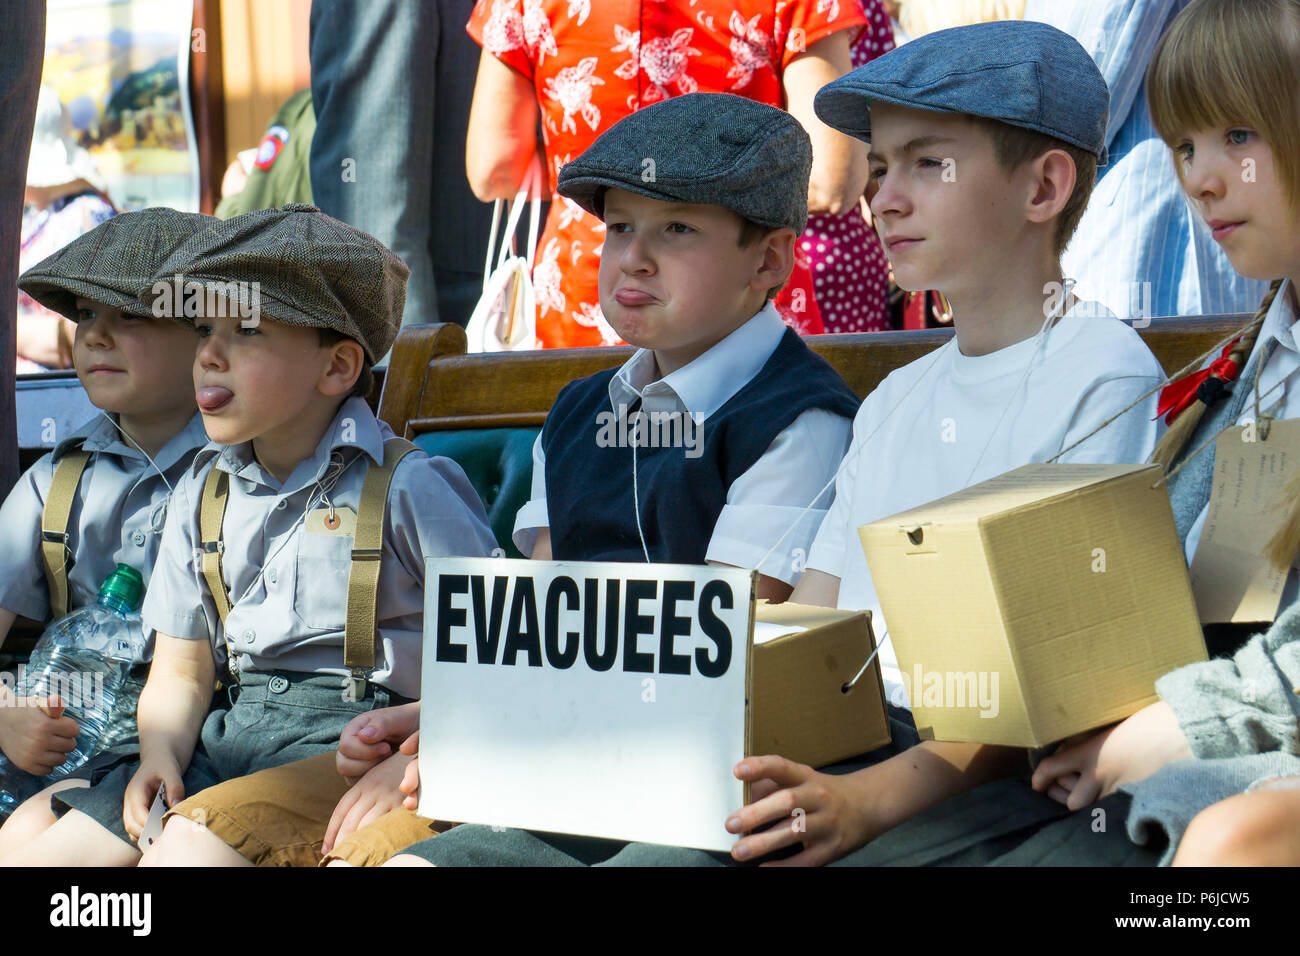 Kidderminster, UK. 30th June, 2018. A journey back in time begins on the Severn Valley Railway as all involved turn the clock back to the 1940s. Visitors and staff pull out all the stops to ensure a realistic wartime Britain is experienced by all on this heritage railway line. Credit: Lee Hudson/Alamy Live News - Stock Image